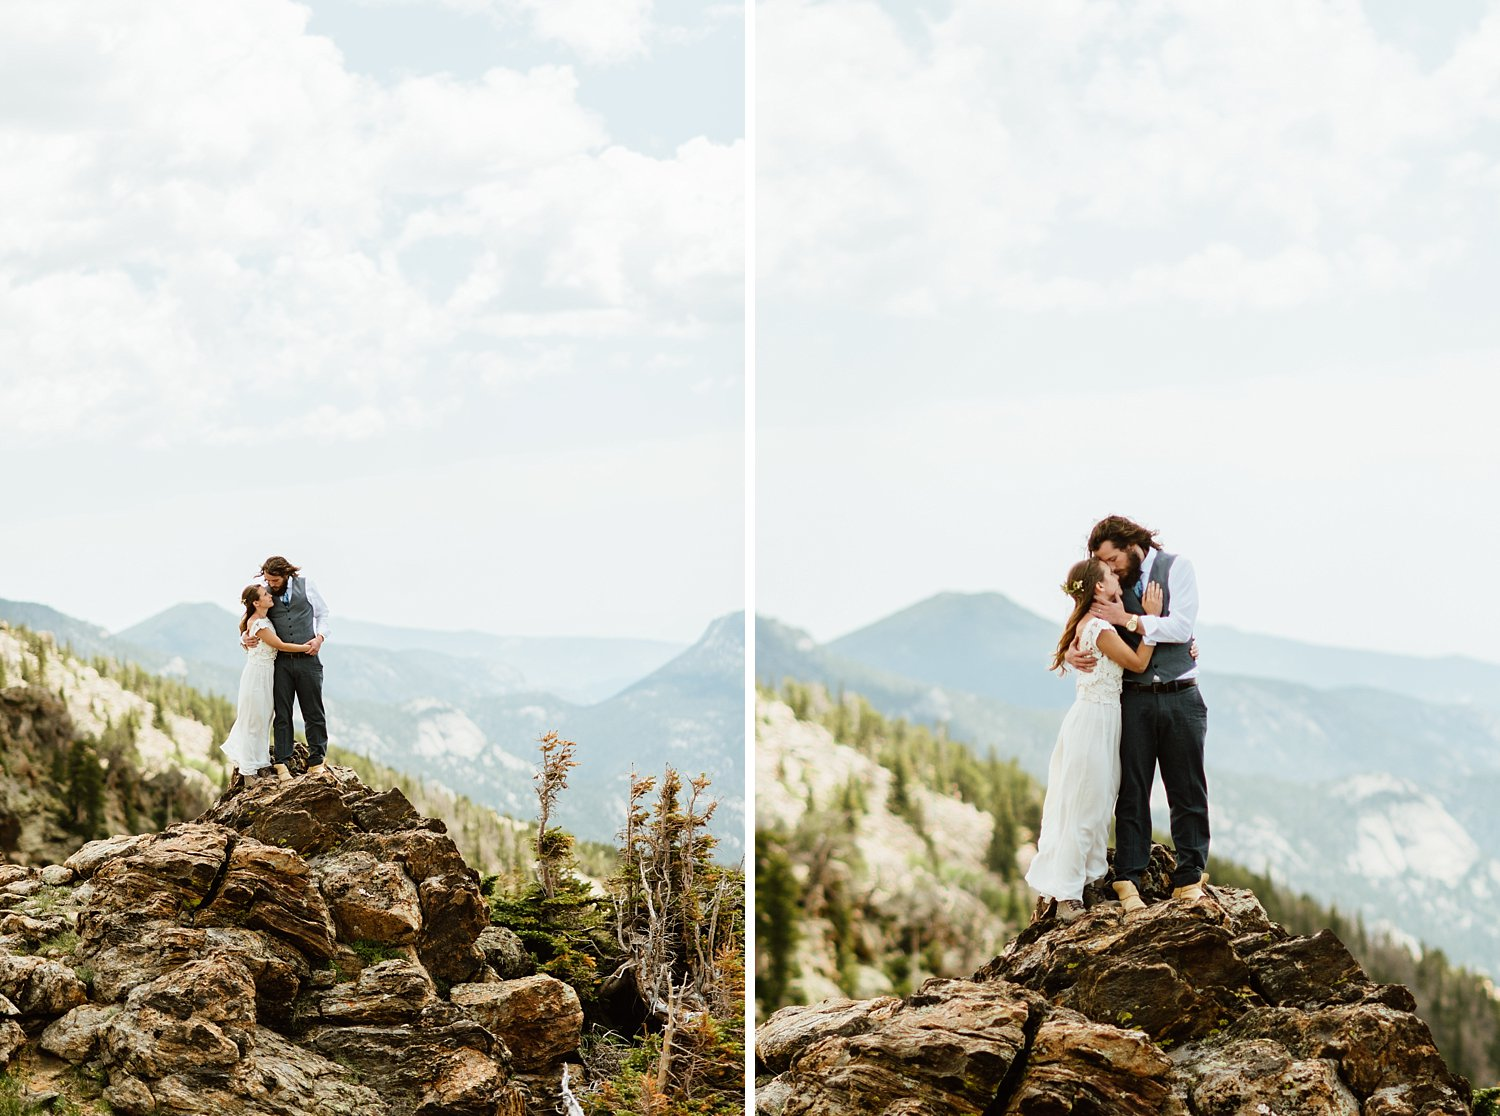 I can't wait to get married in RMNP after seeing how incredible Erin and Graham's wedding pictures turned out! | Rocky Mountain National Park elopement photos by Colorado hiking wedding photographer, Maddie Mae.